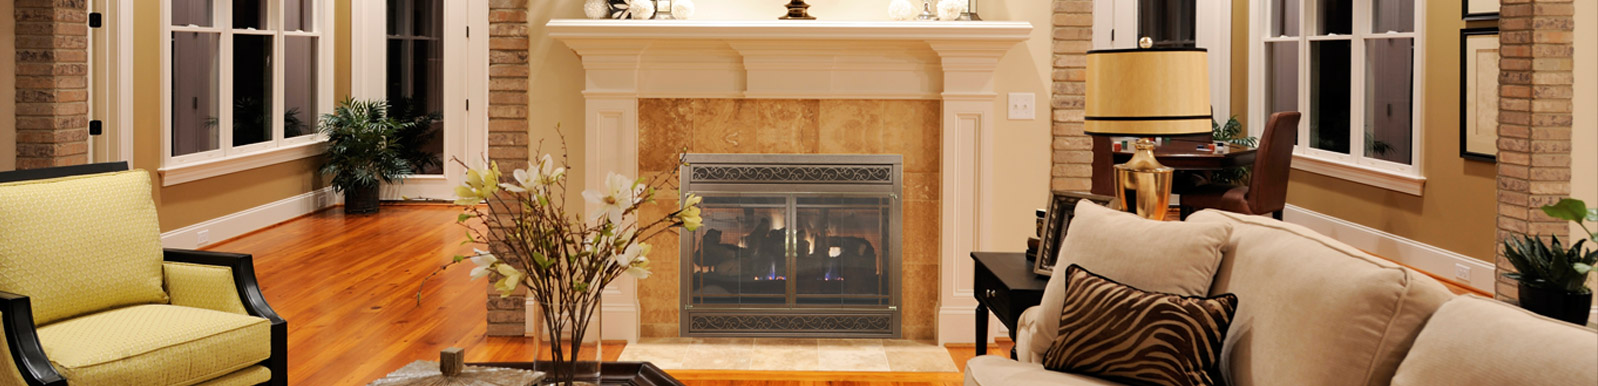 Chim Cherie S House Of Fireplaces Des Moines Iowa Stoves Inserts